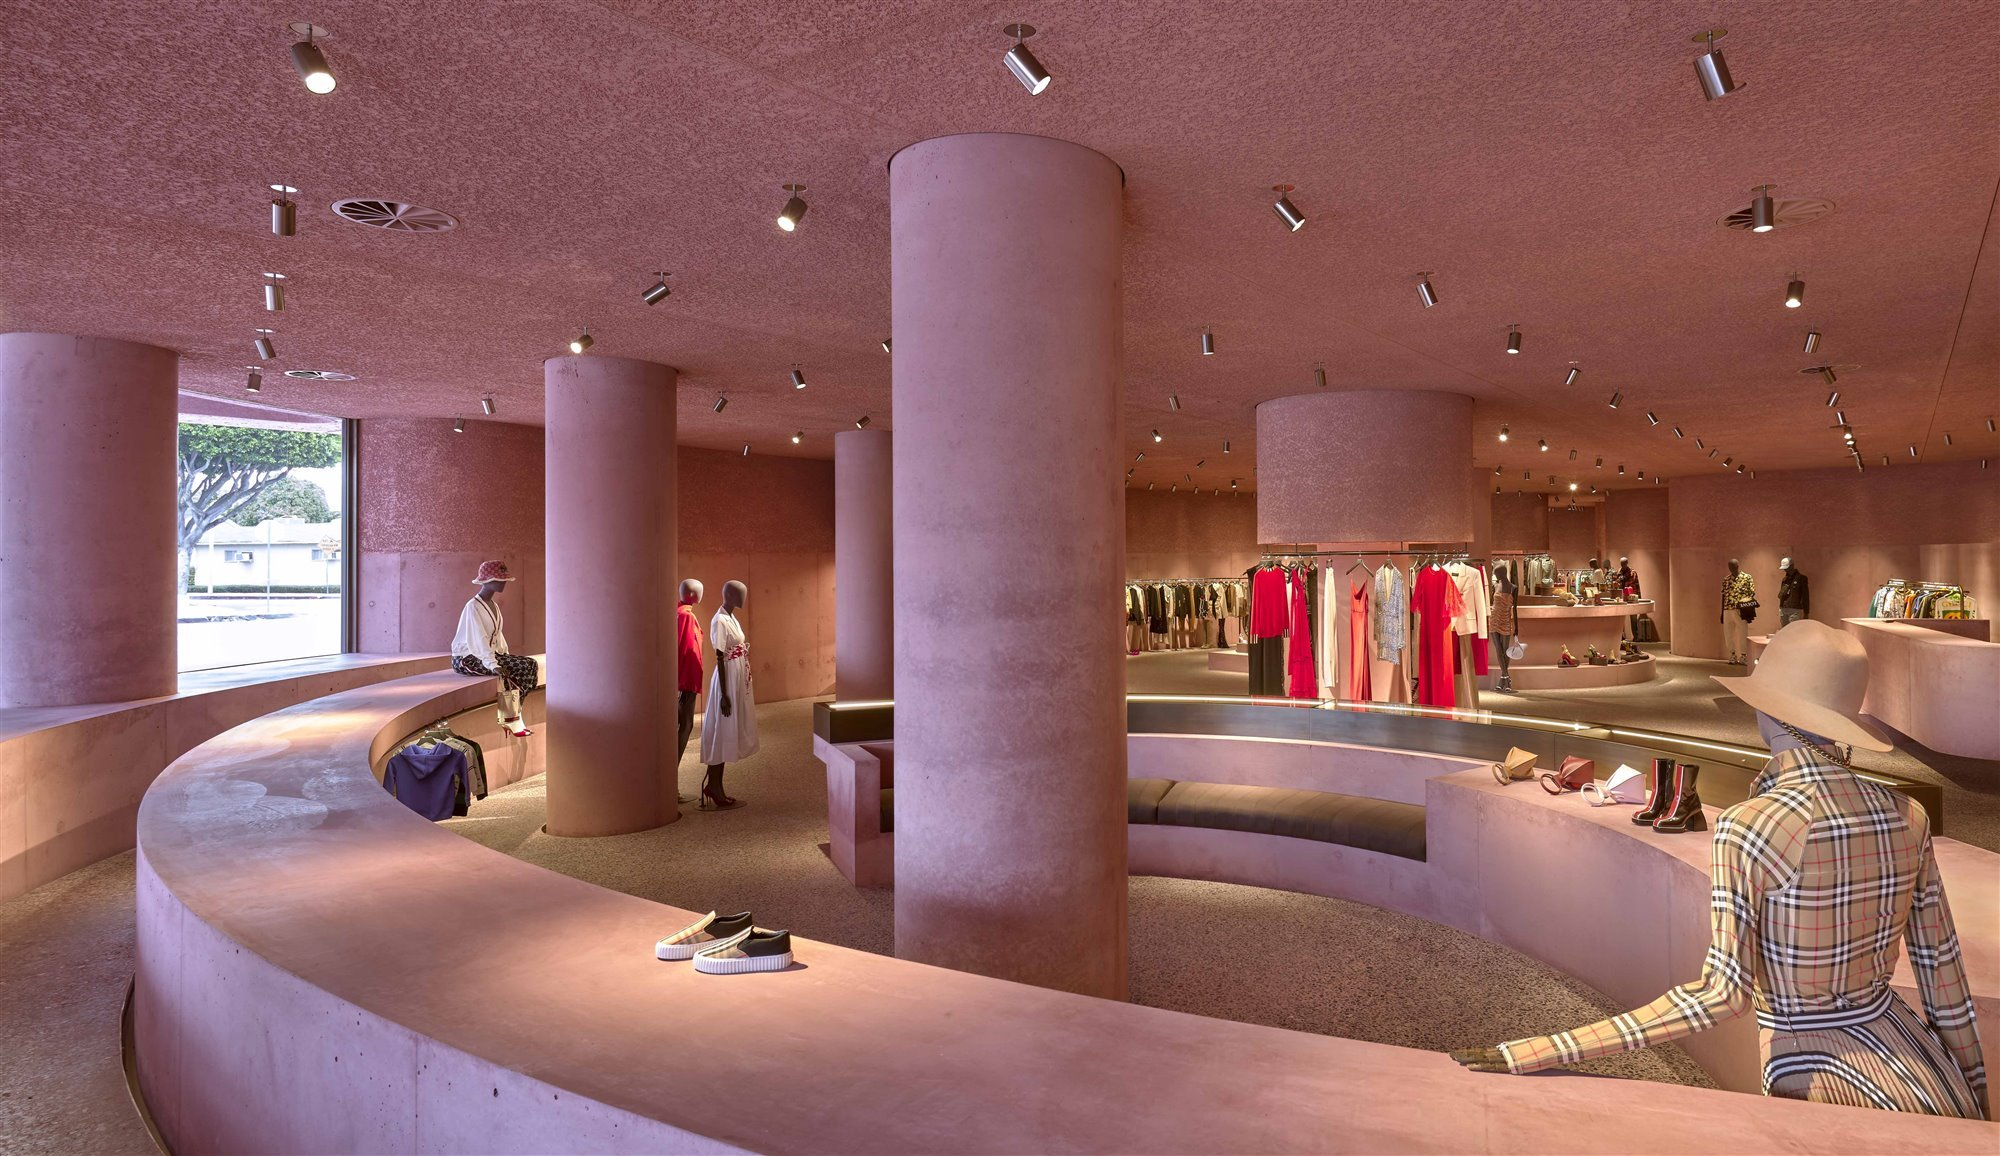 interior boutique tienda de ropa the webster de Adjaye Associates